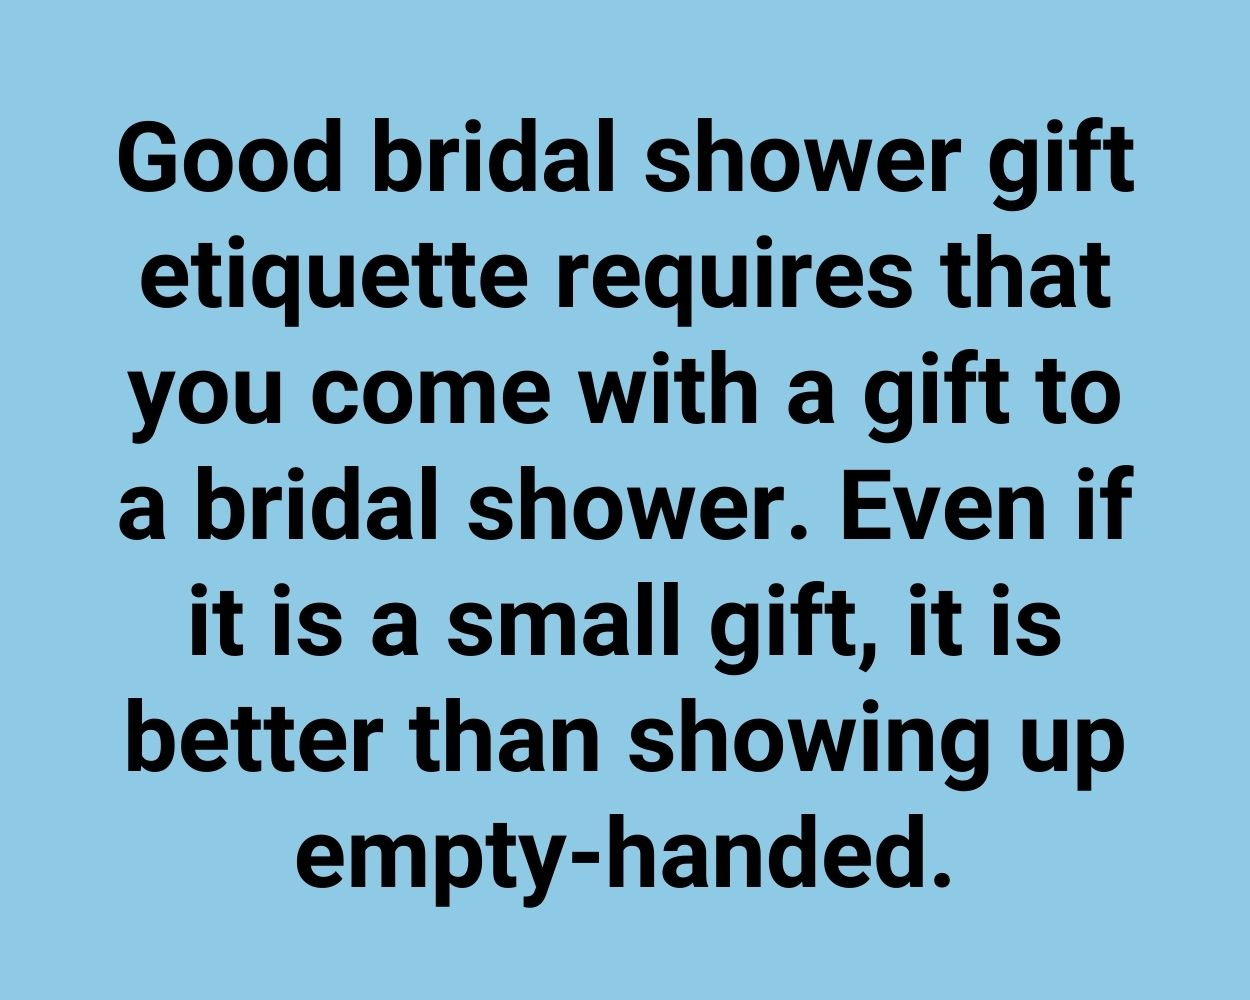 Good bridal shower gift etiquette requires that you come with a gift to a bridal shower. Even if it is a small gift, it is better than showing up empty-handed.